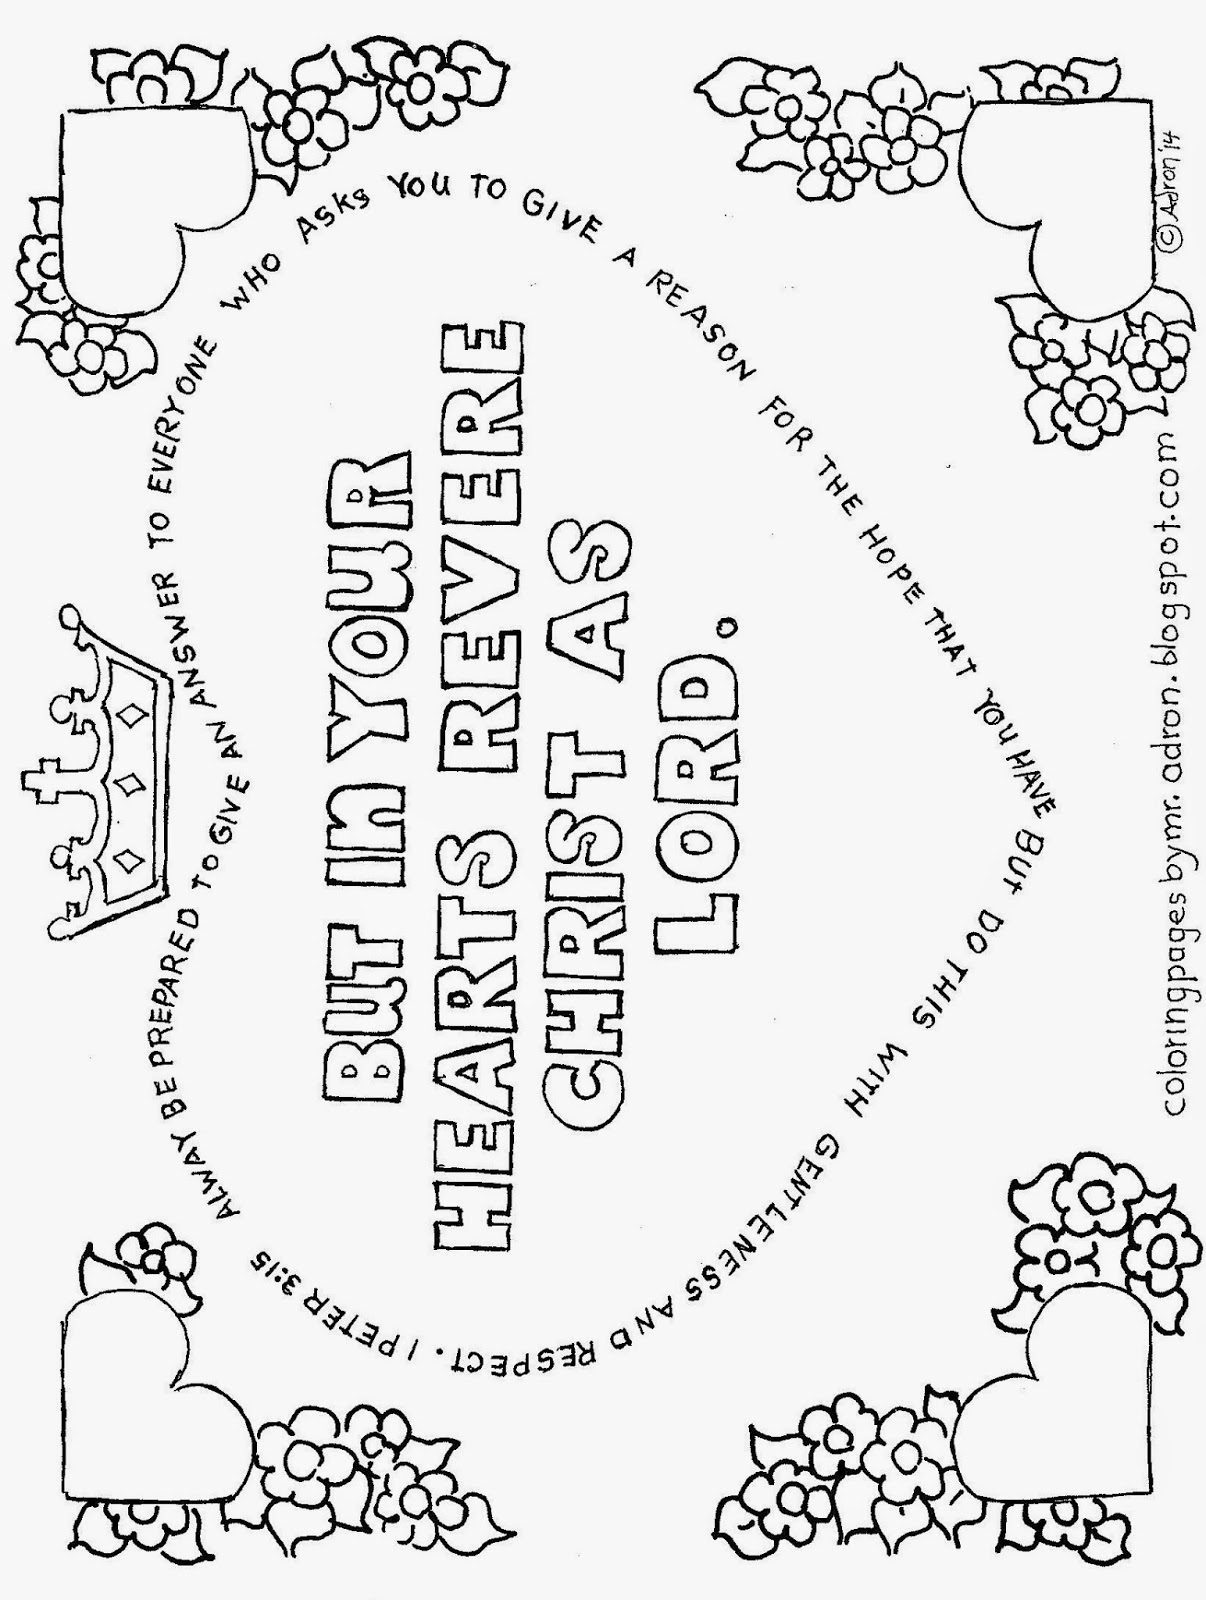 1 peter 5 7 coloring page coloring pages for kids by mr adron in your hearts 5 7 page coloring peter 1